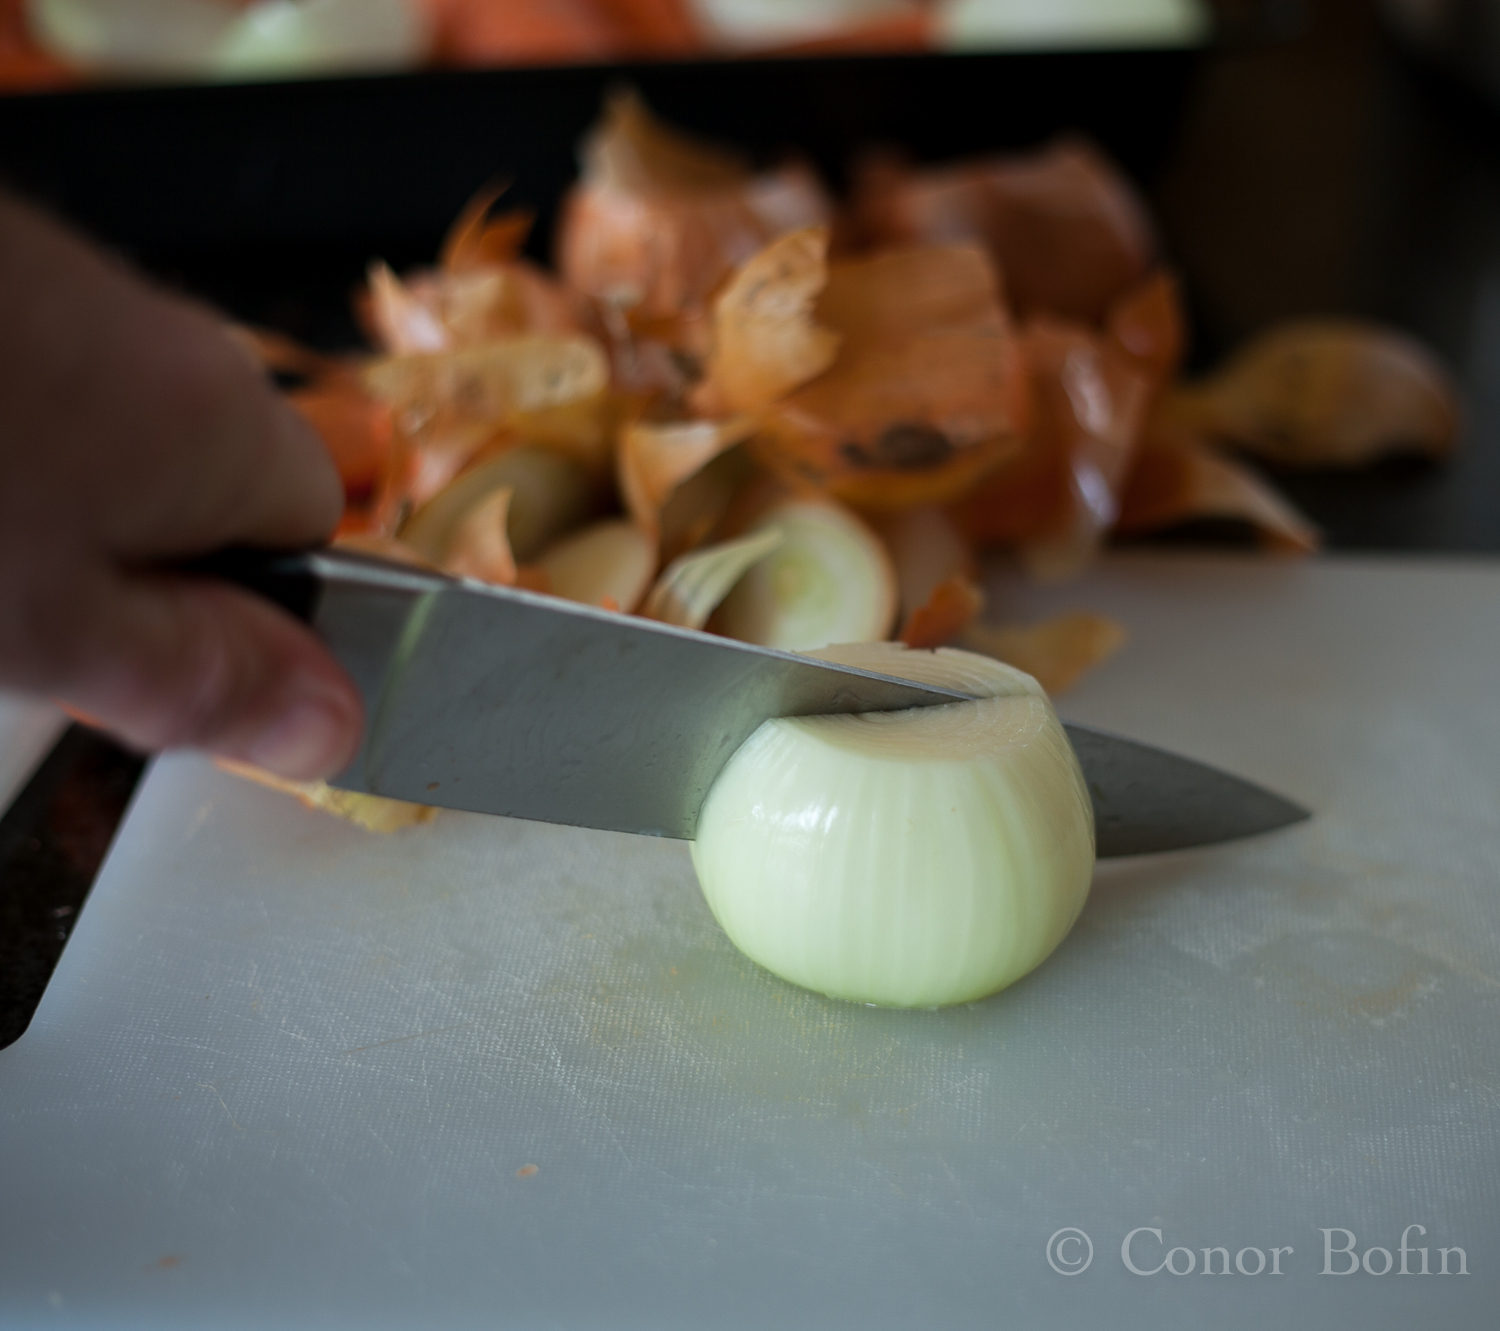 Onion being chopped roughly.